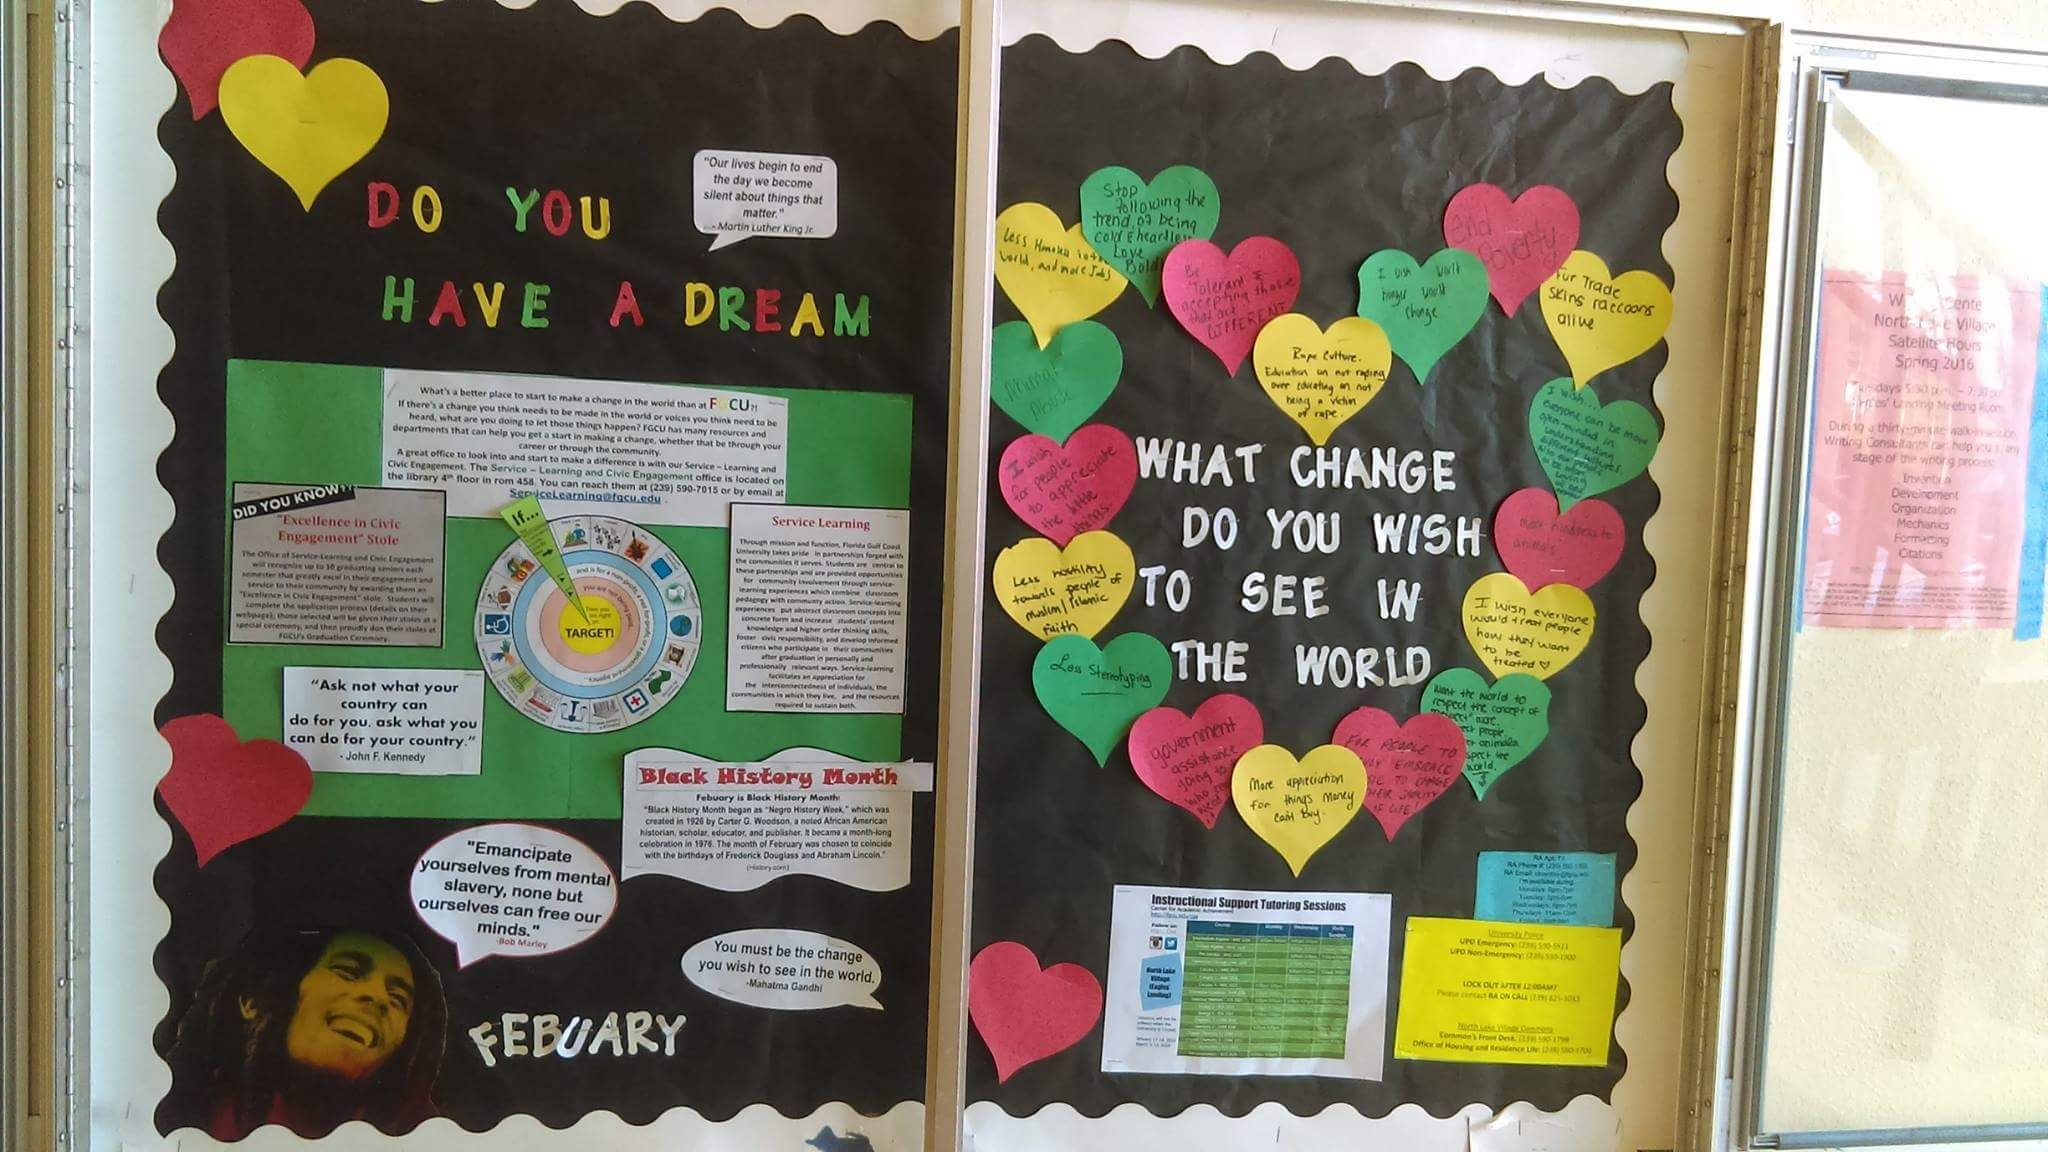 College bulletin board for february on community service